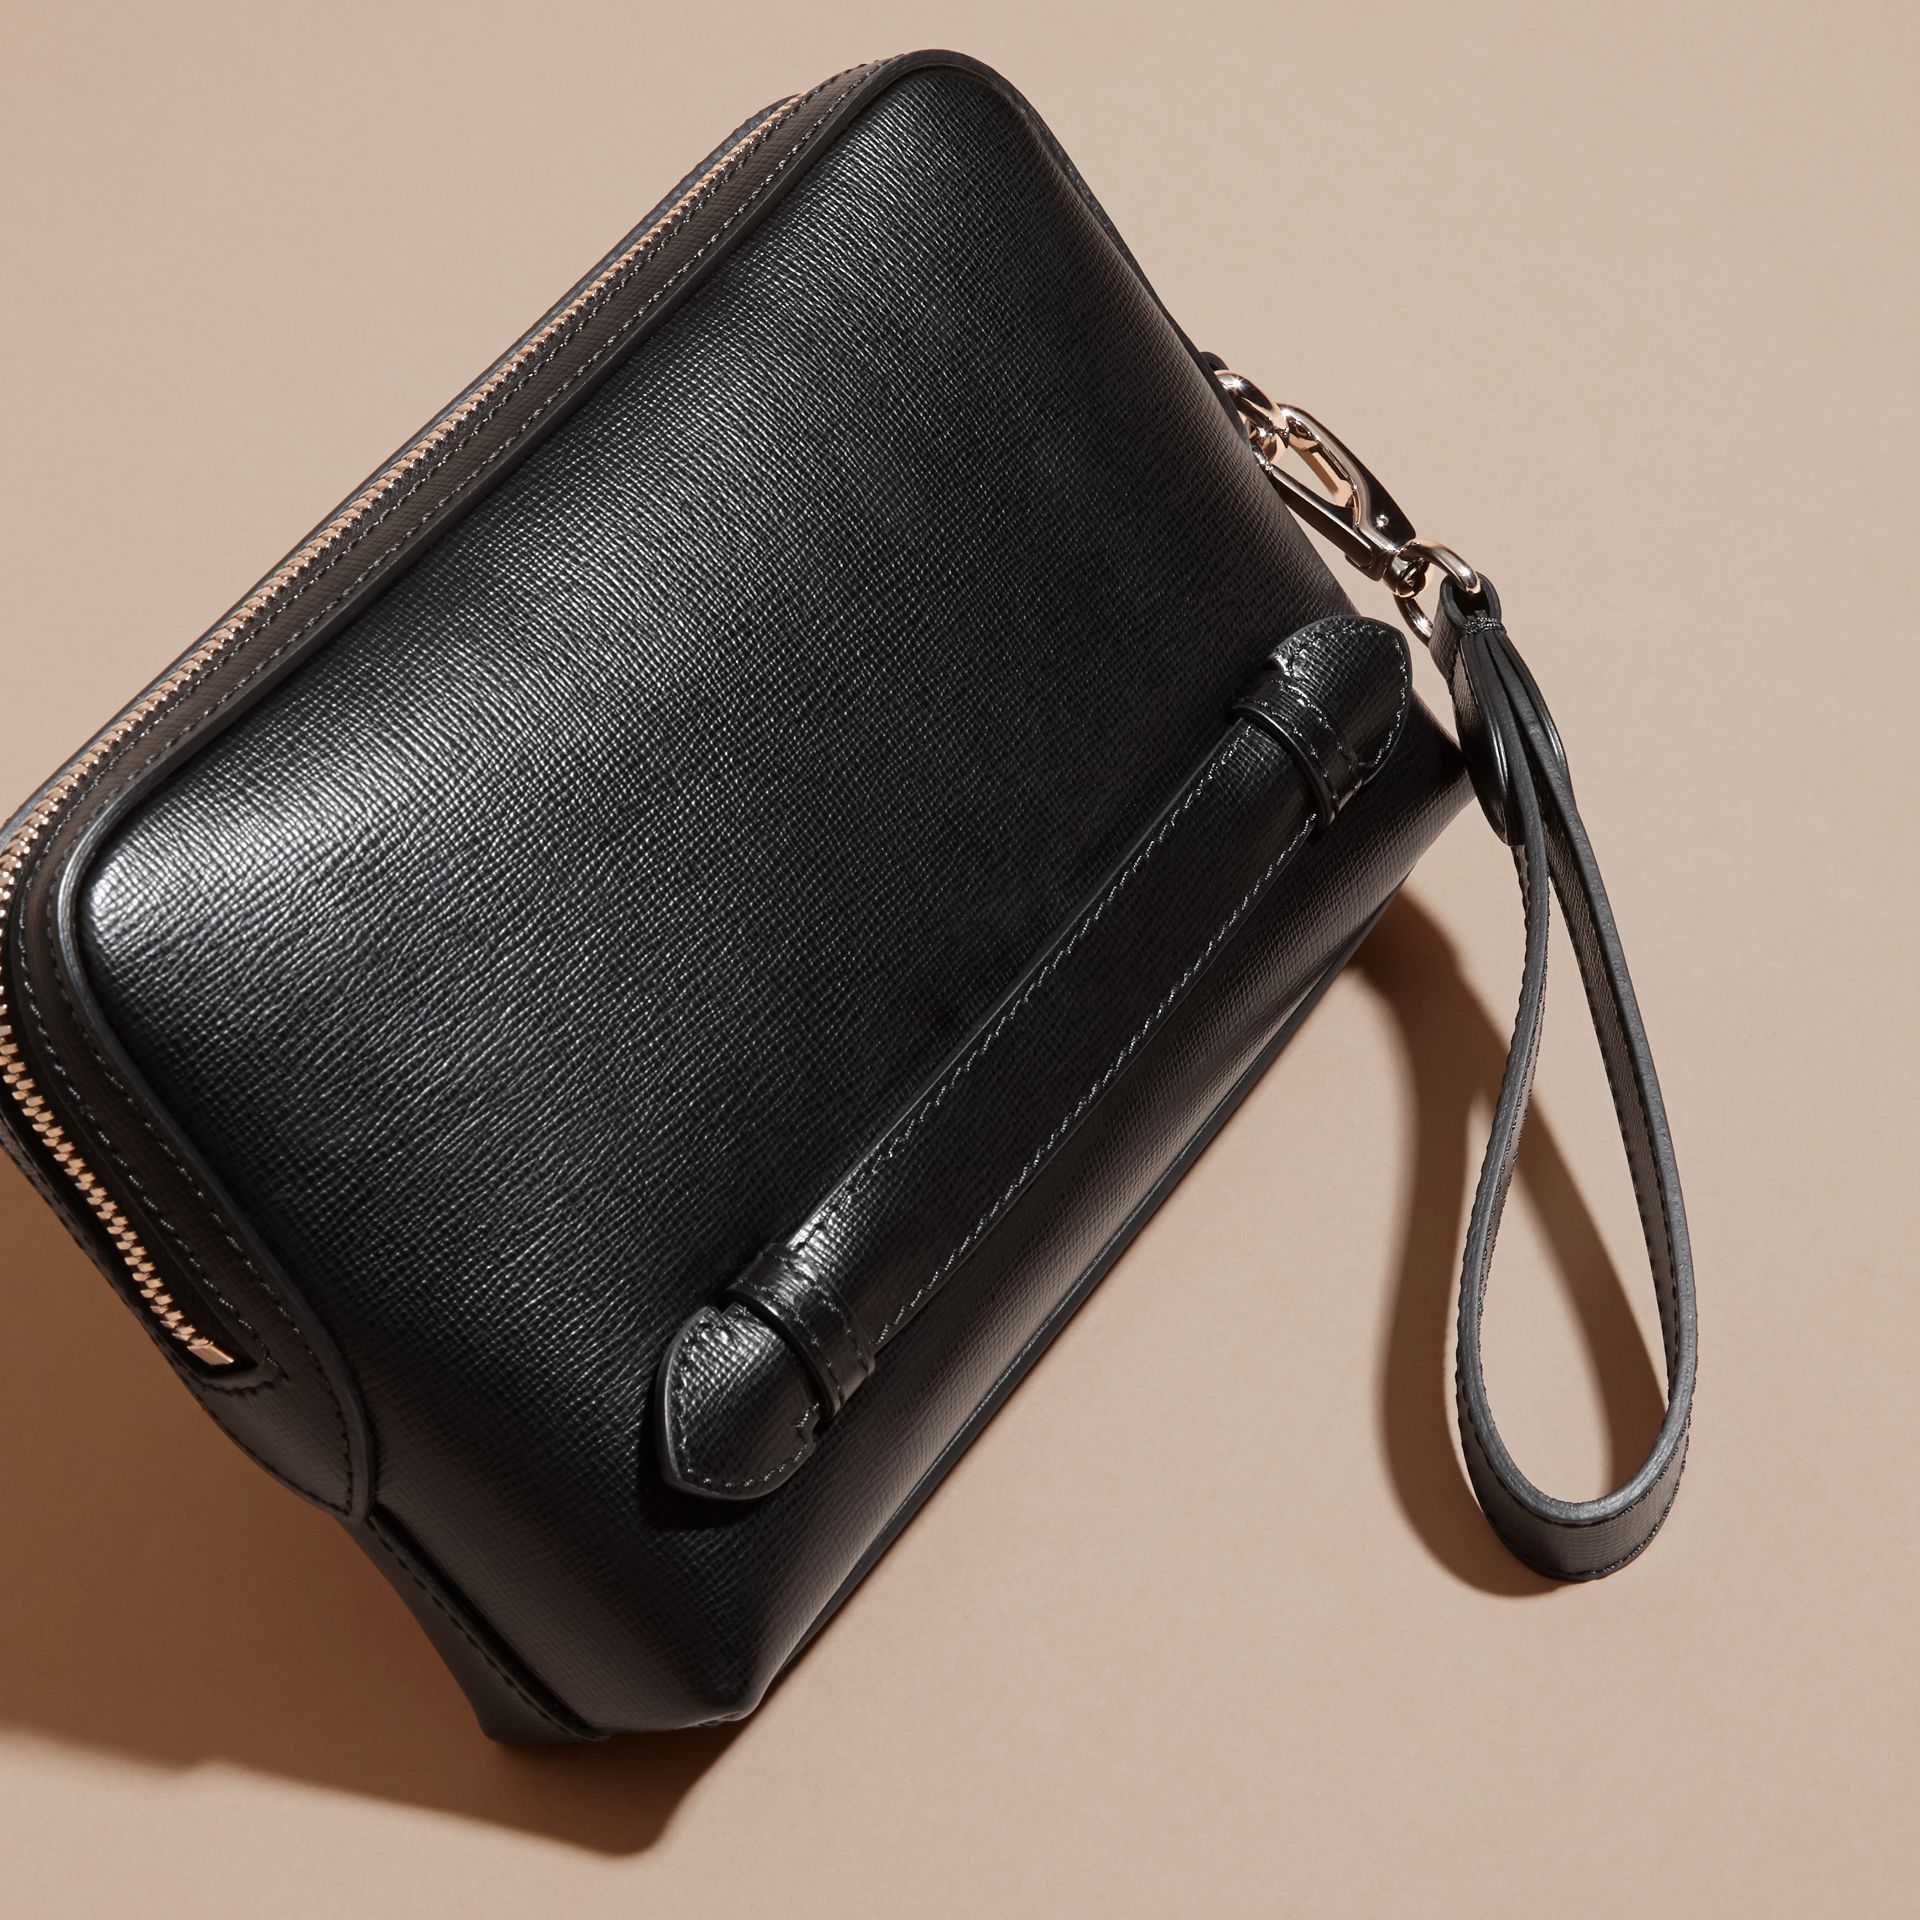 London Leather Pouch in Black - Men | Burberry Canada - gallery image 4